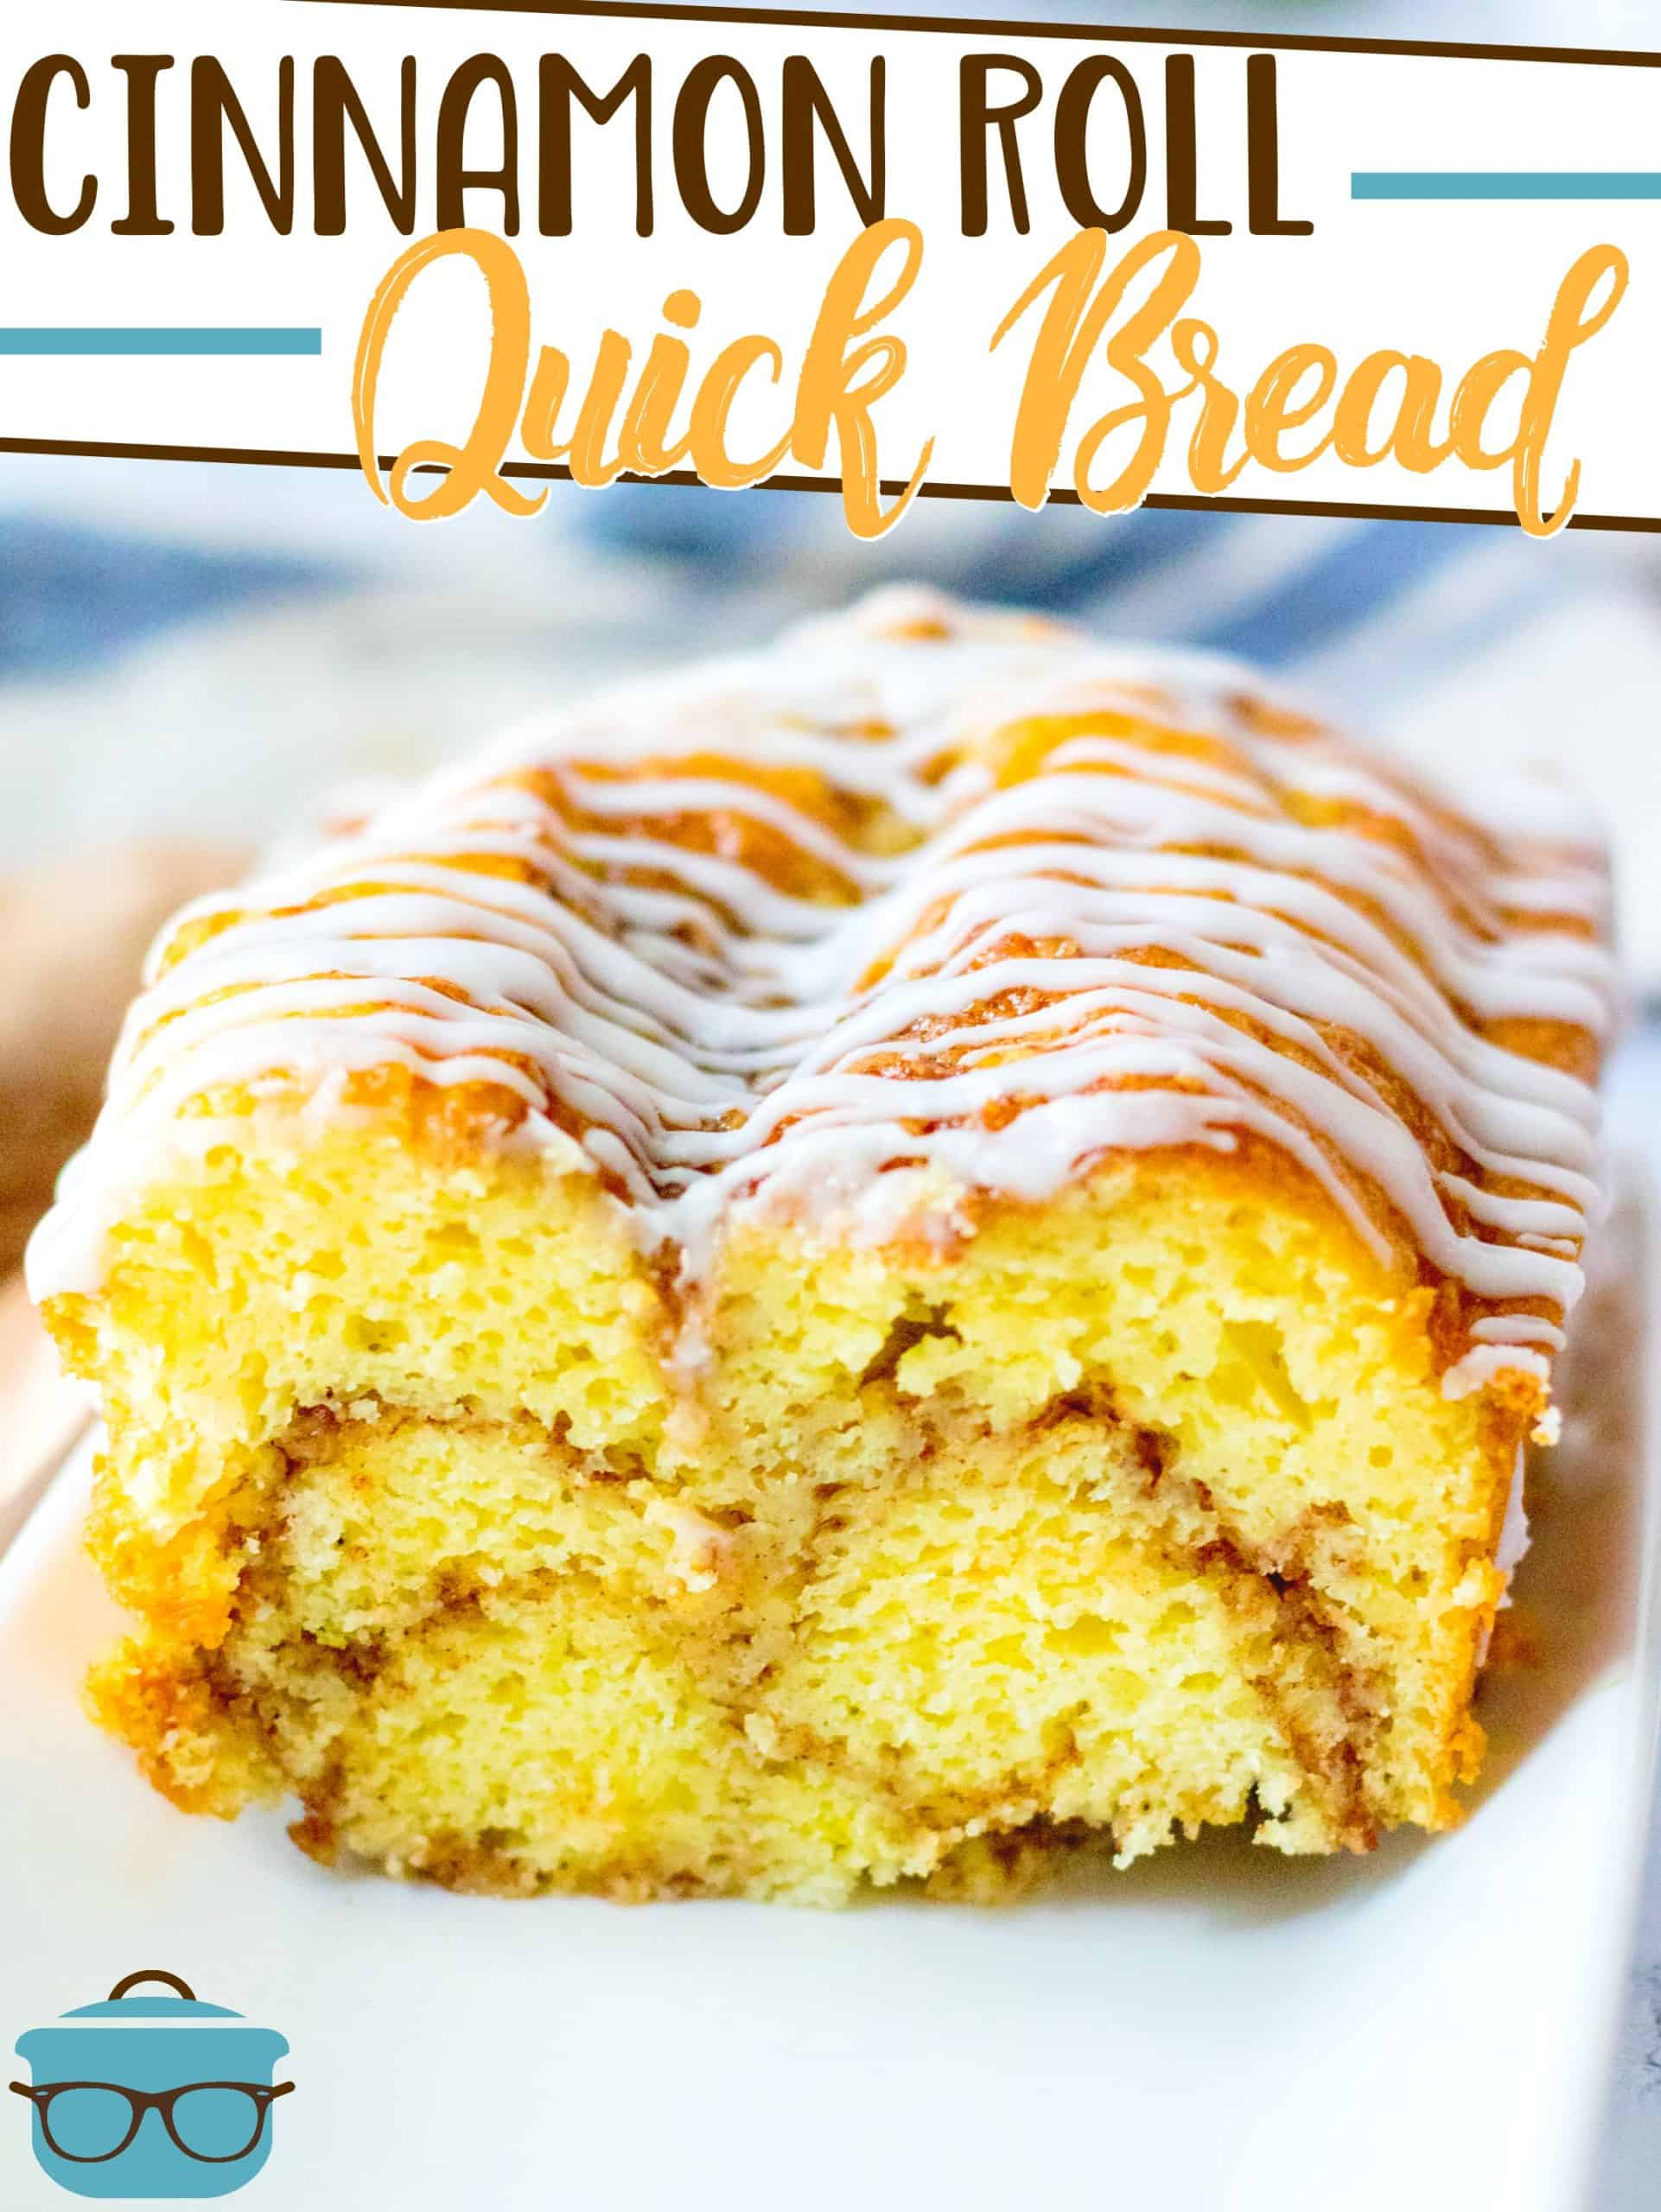 This easy Cinnamon Roll Quick Bread is easily made with a boxed cake mix with a delicious brown sugar cinnamon butter swirl inside!